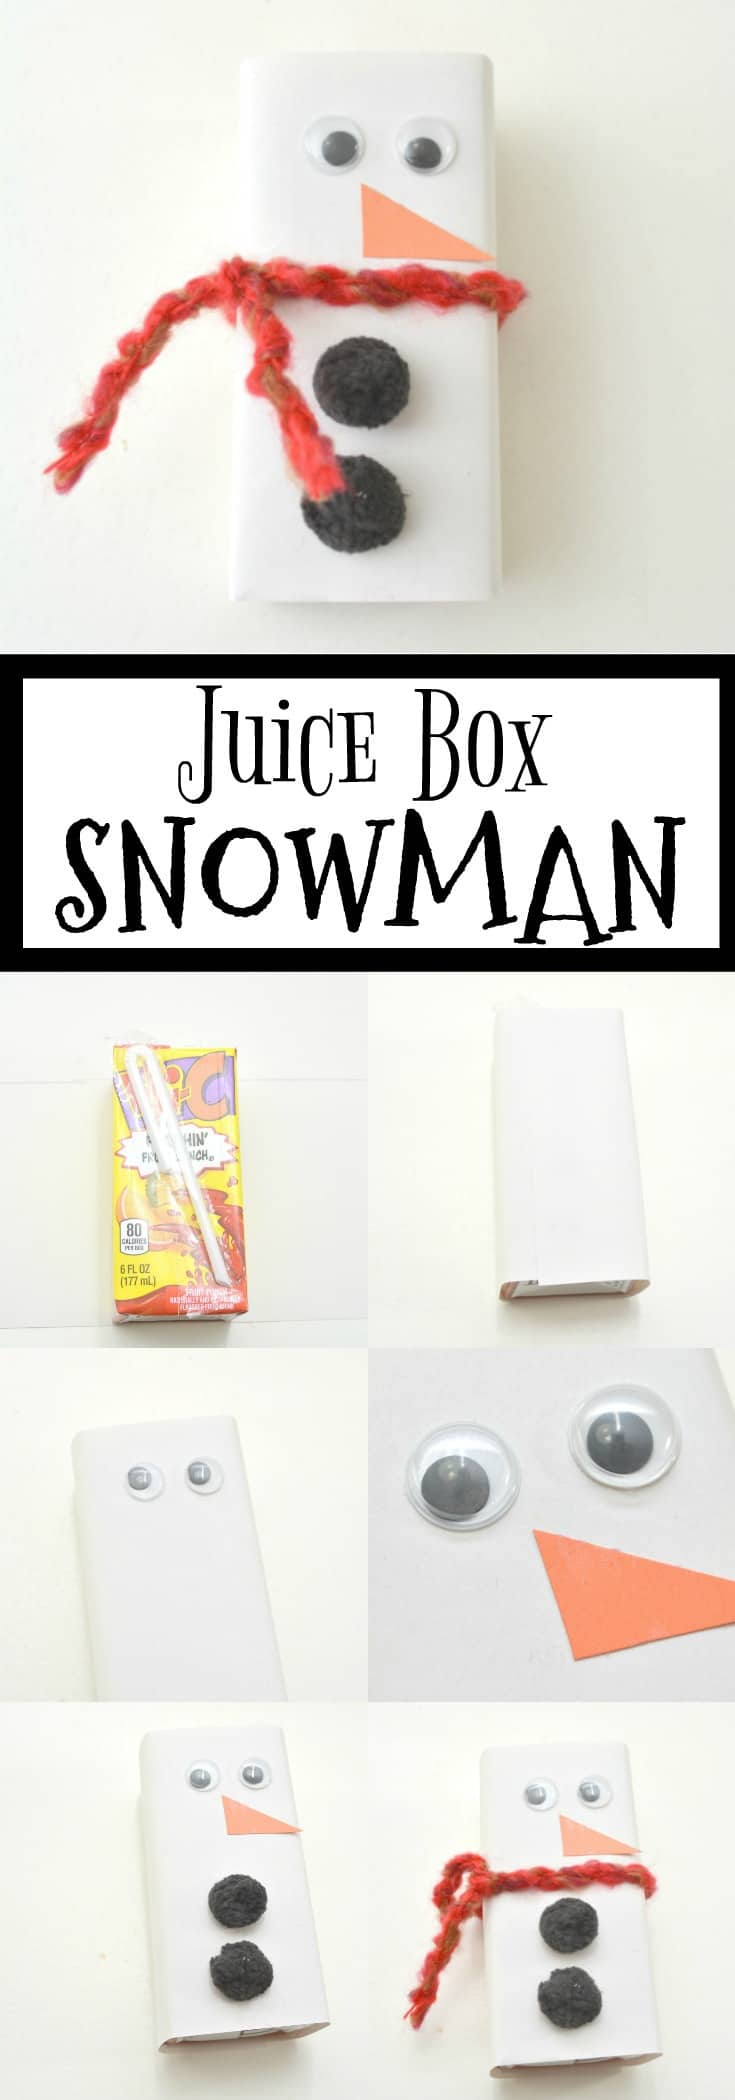 Can't wait to surprise my kids with a juice box snowman in each of their lunchboxes!